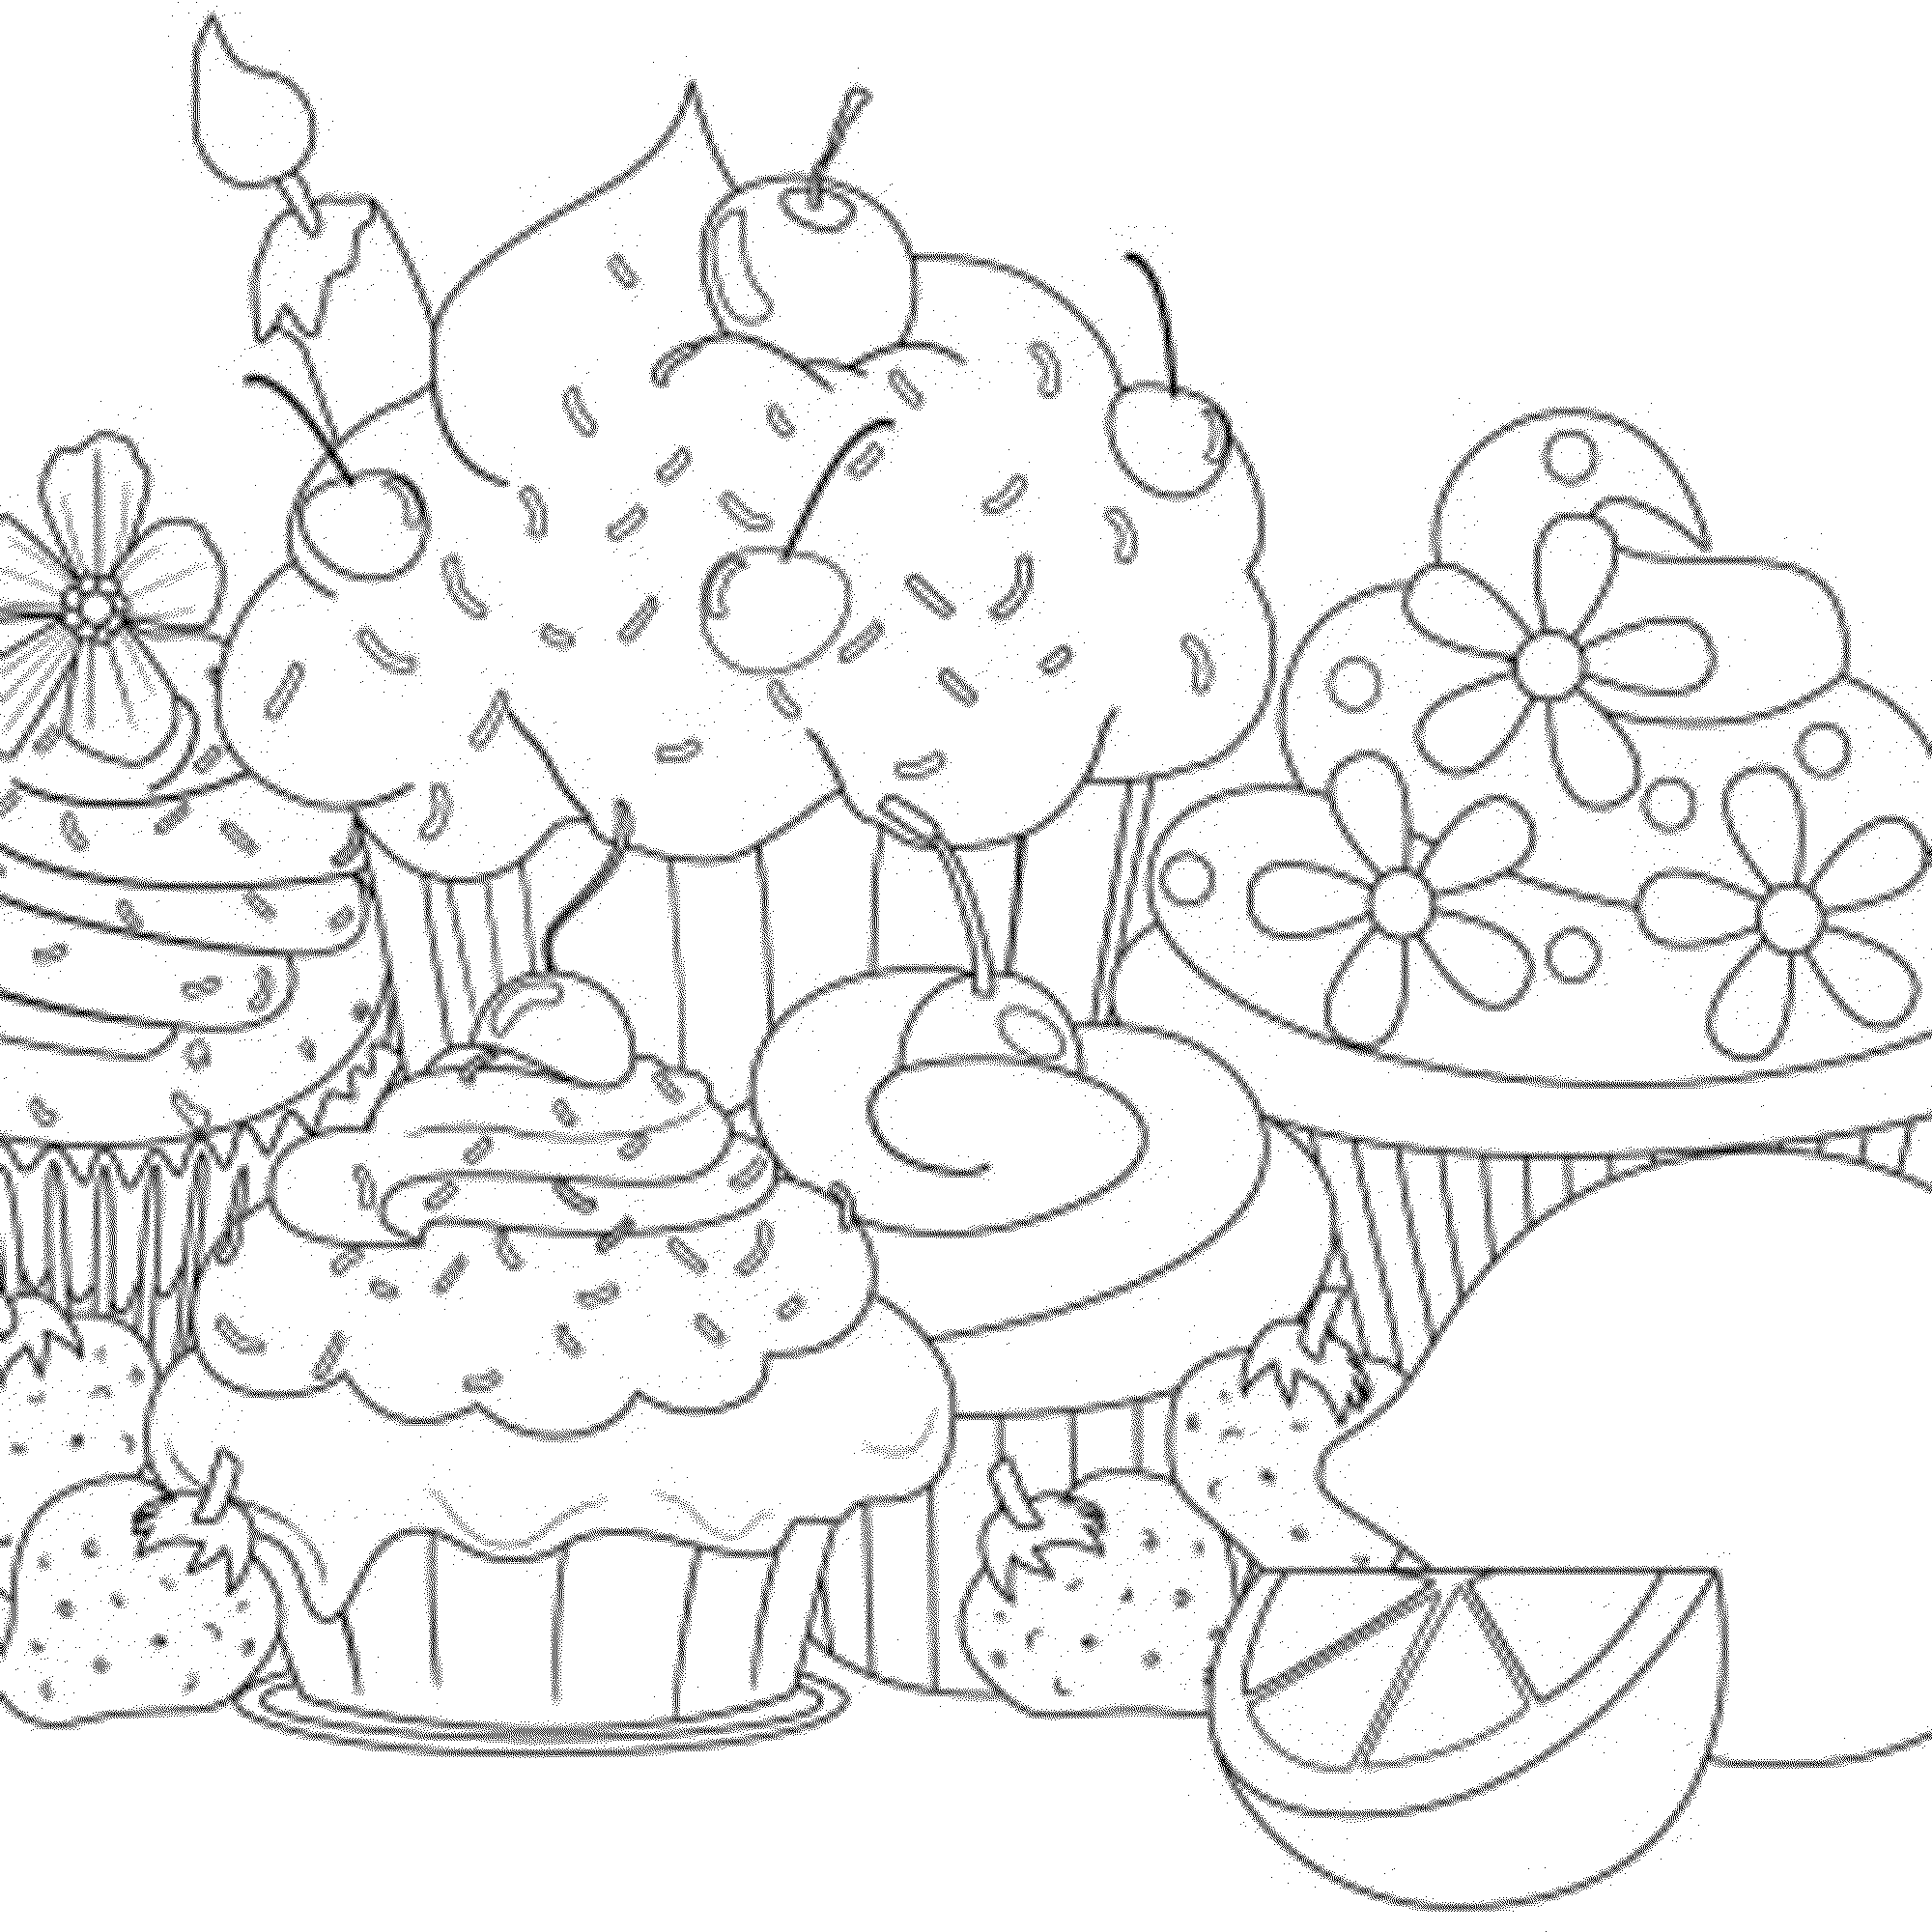 cupcakes coloring page Color Art Therapy Food And